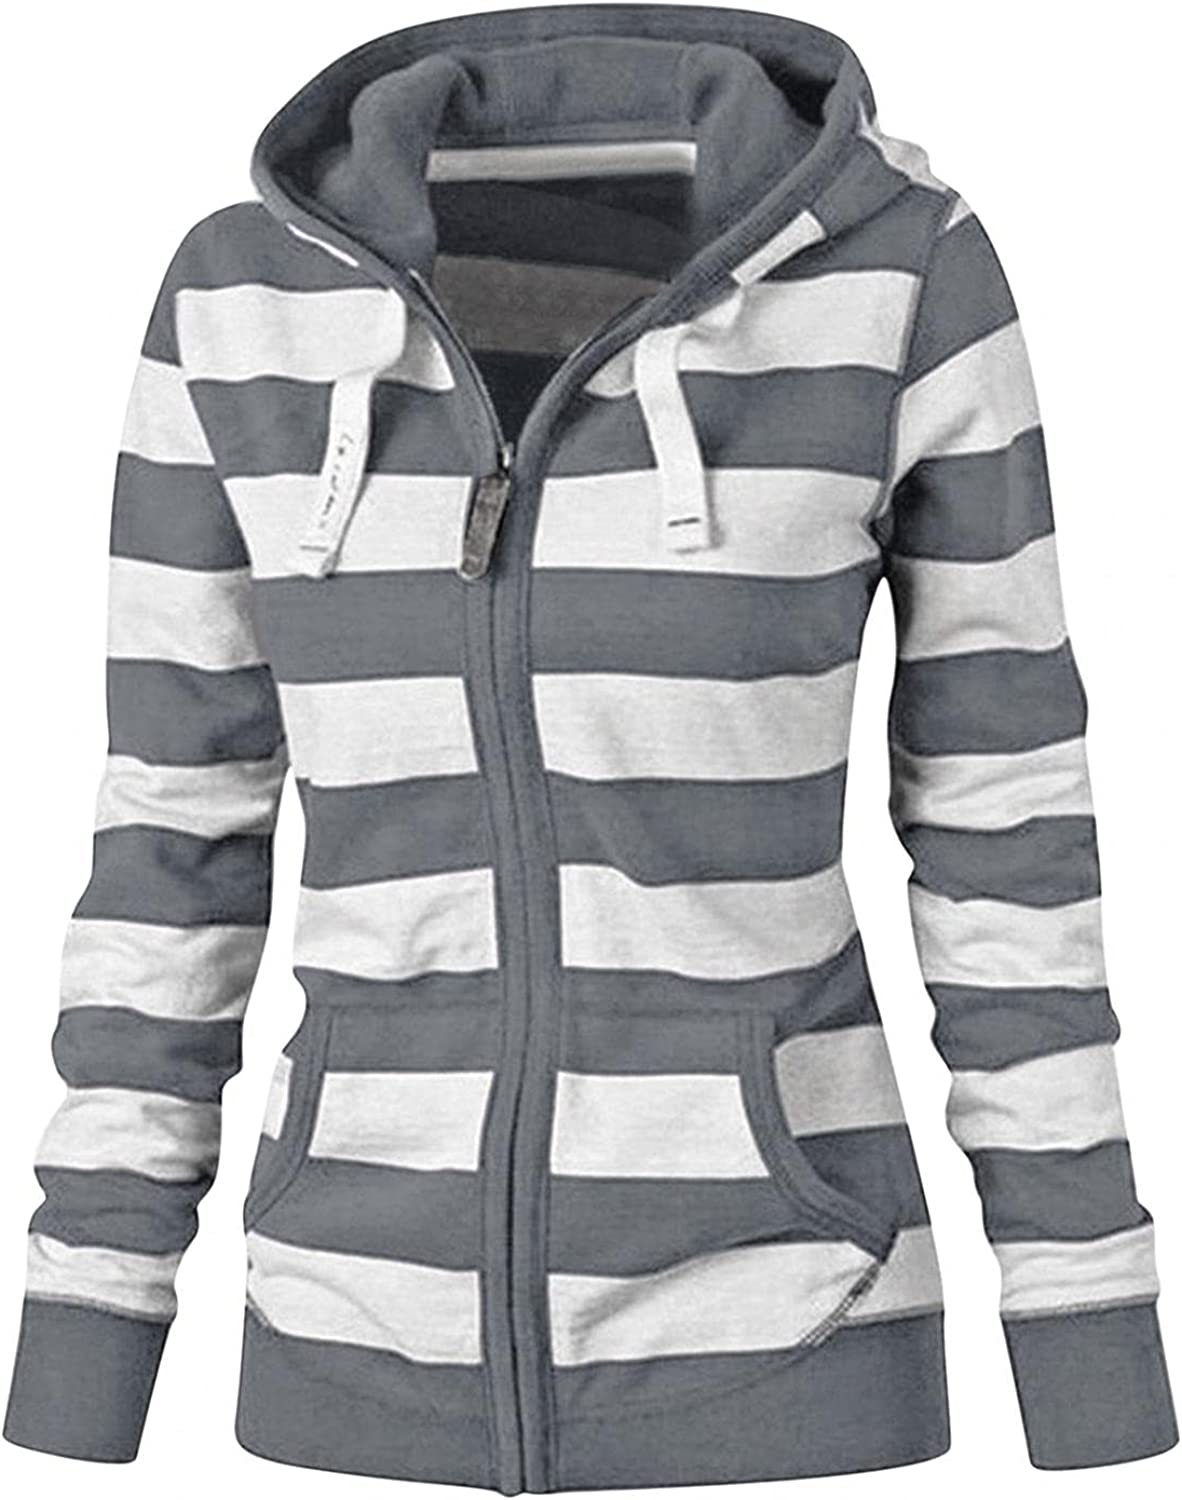 Hoodies for Women Pullover,Womens Casual Striped Printed Sweatshirt Long Sleeve Zip Up Jacket Hooded Shirts Tops Fall Coat